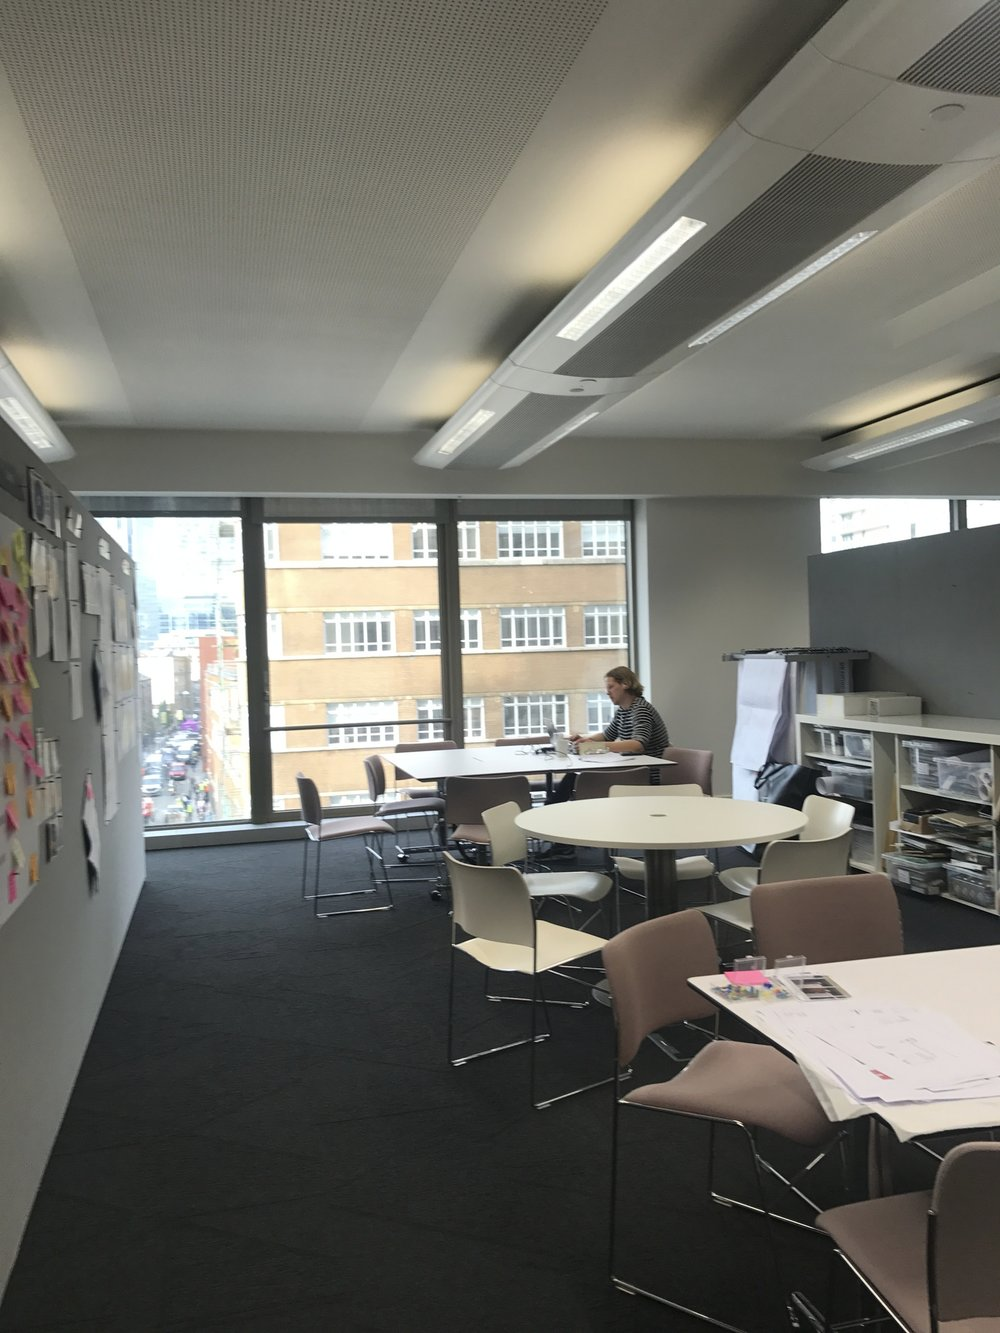 Collaboration areas that double as individual working areas